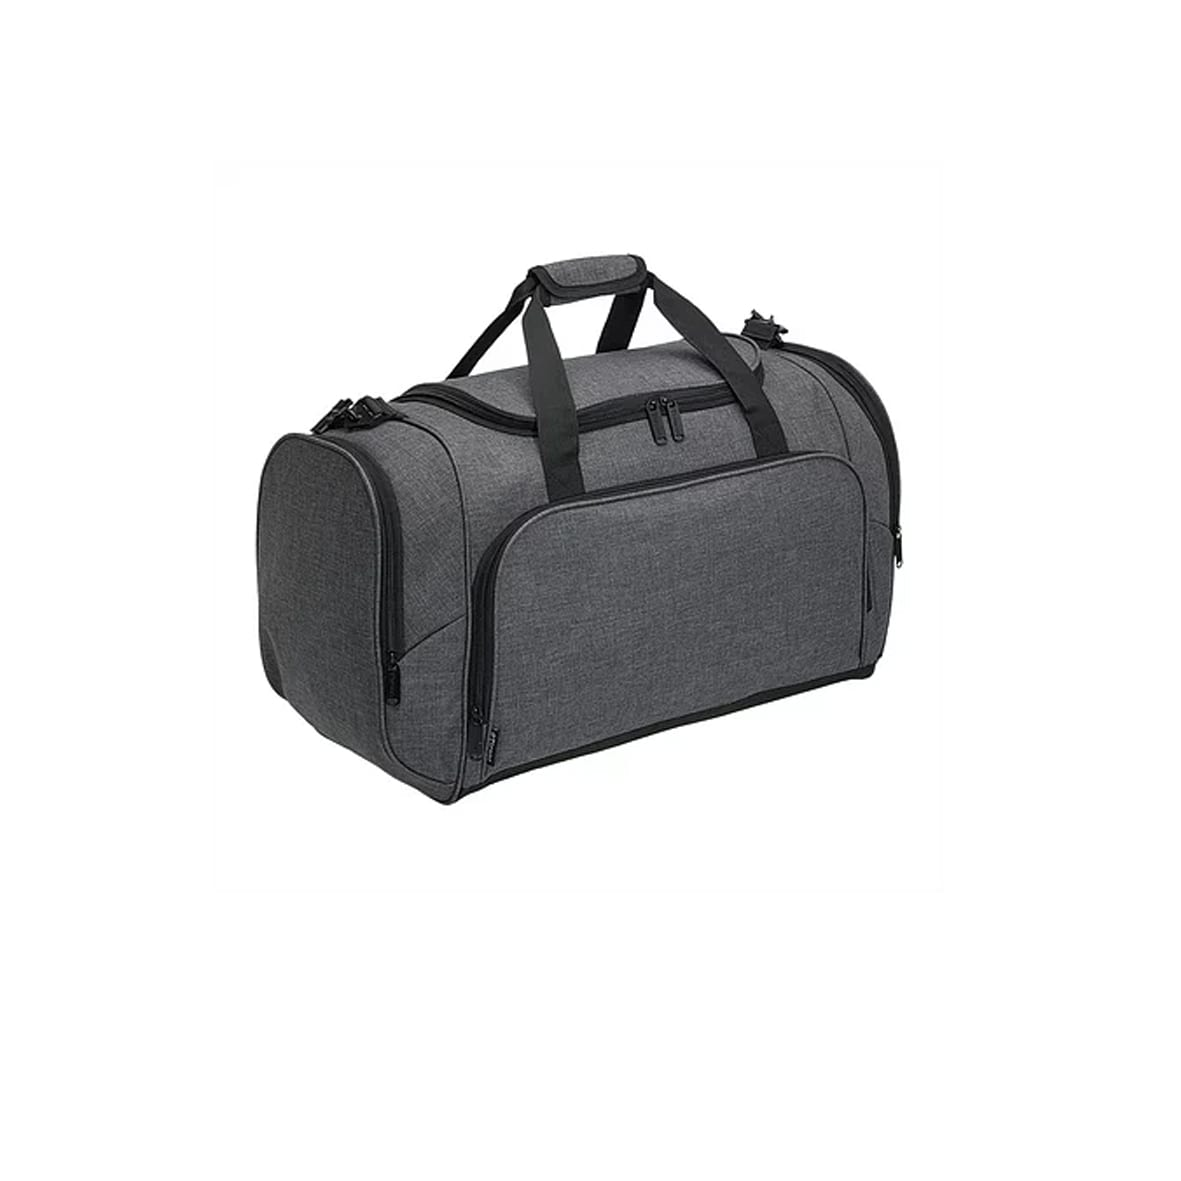 Tirano duffle bag